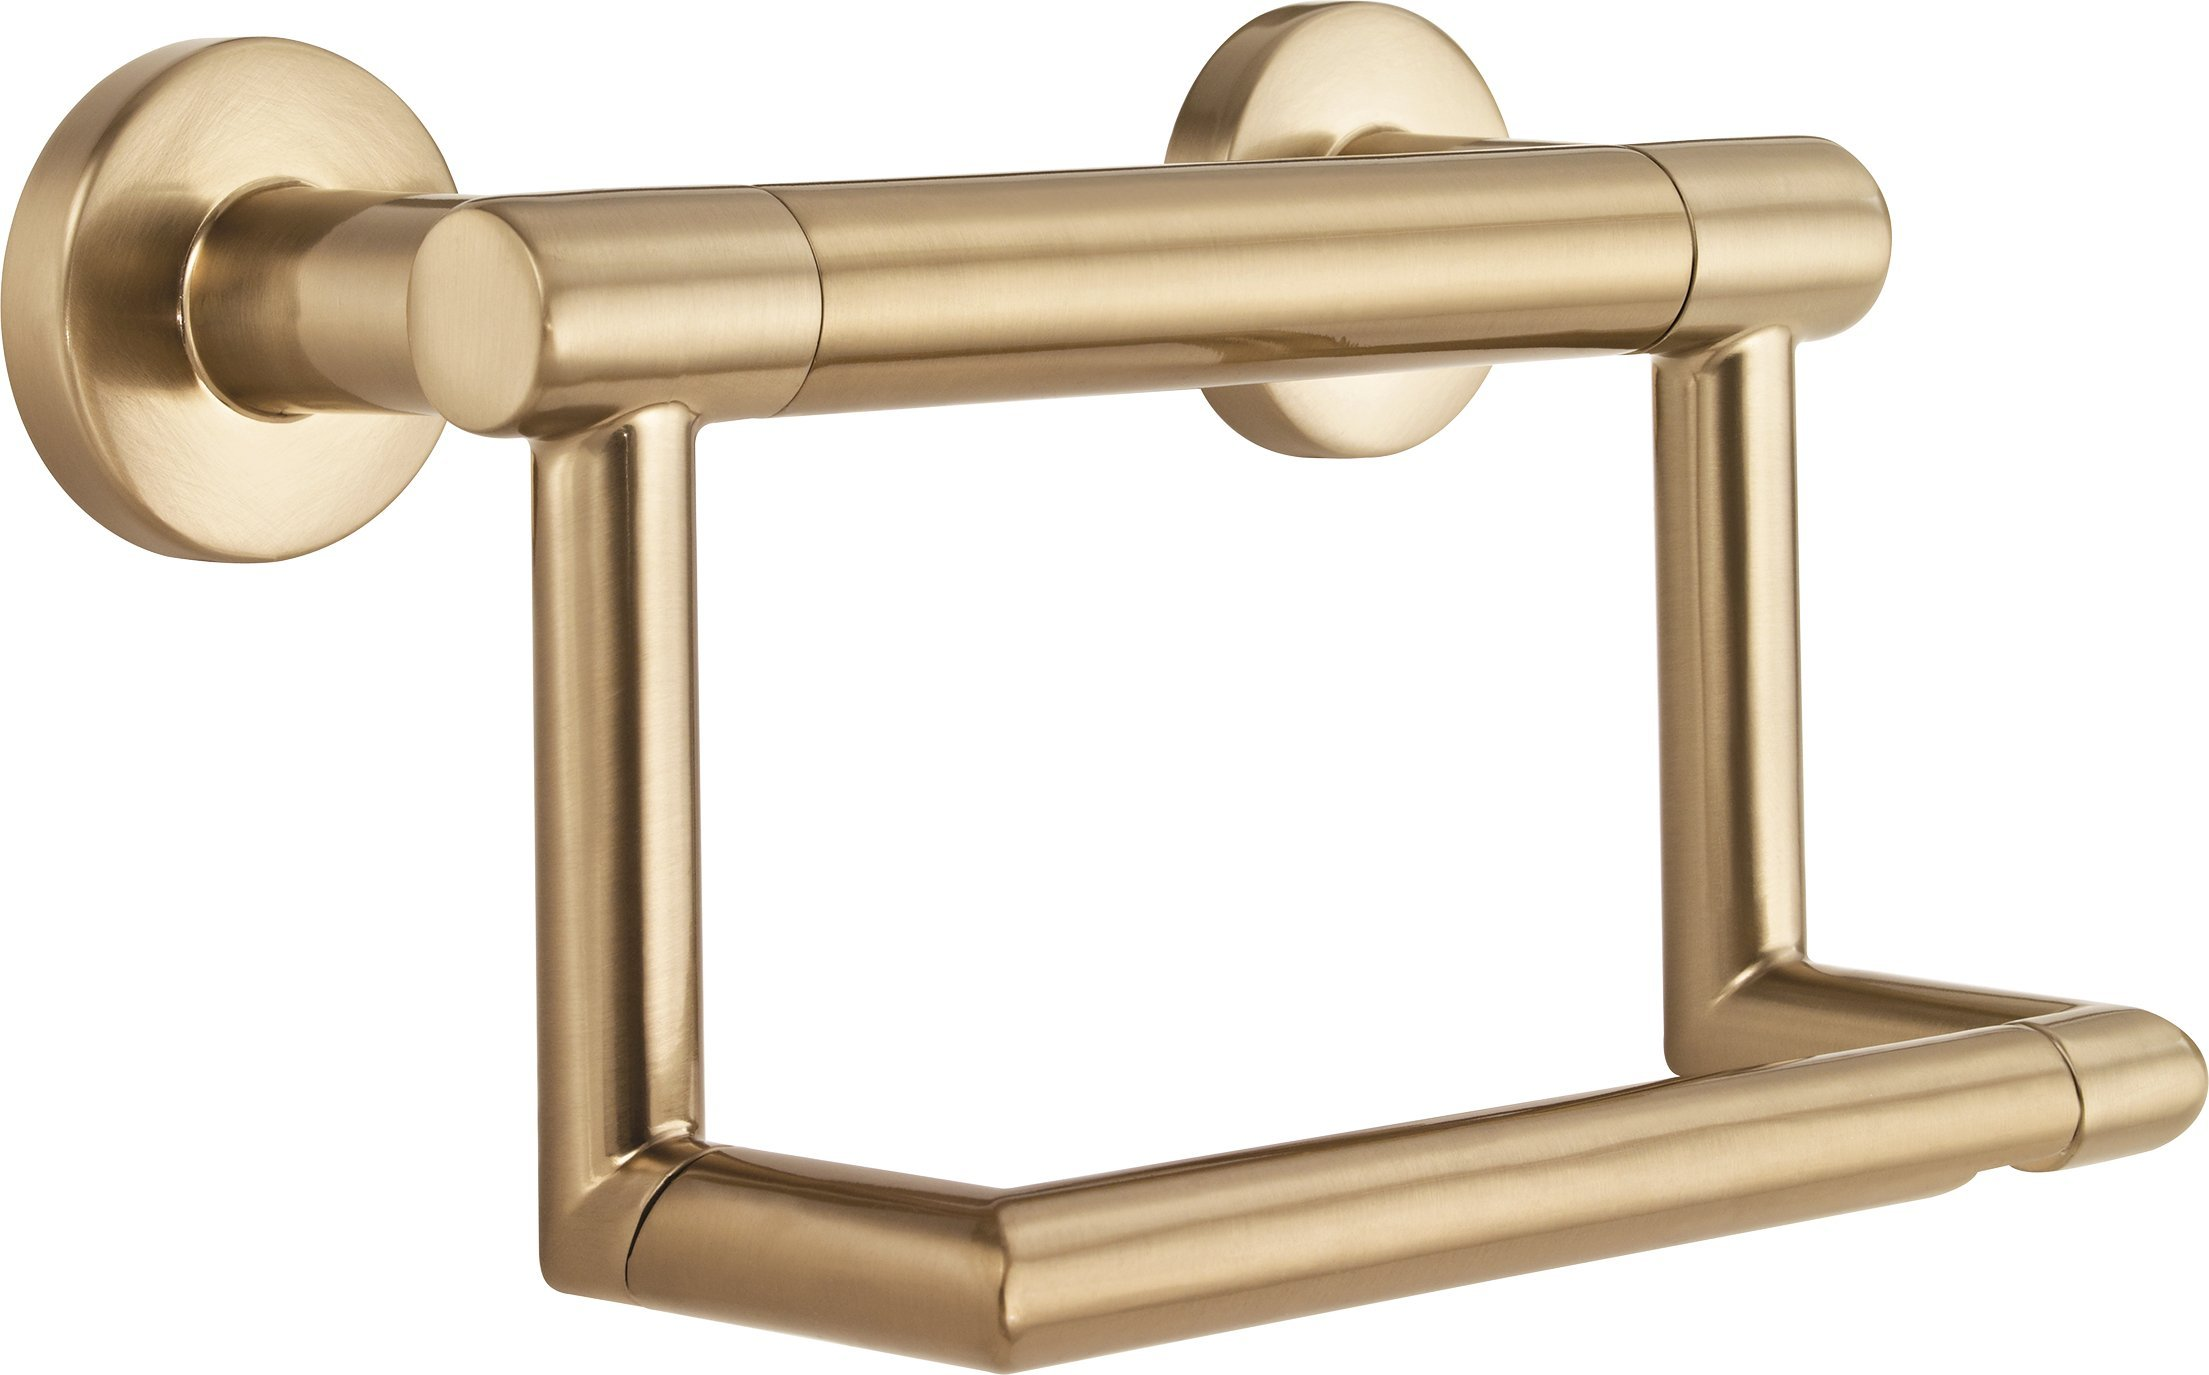 Delta Faucet 41550-CZ Contemporary Tissue Holder/Assist Bar, Champagne Bronze by DELTA FAUCET